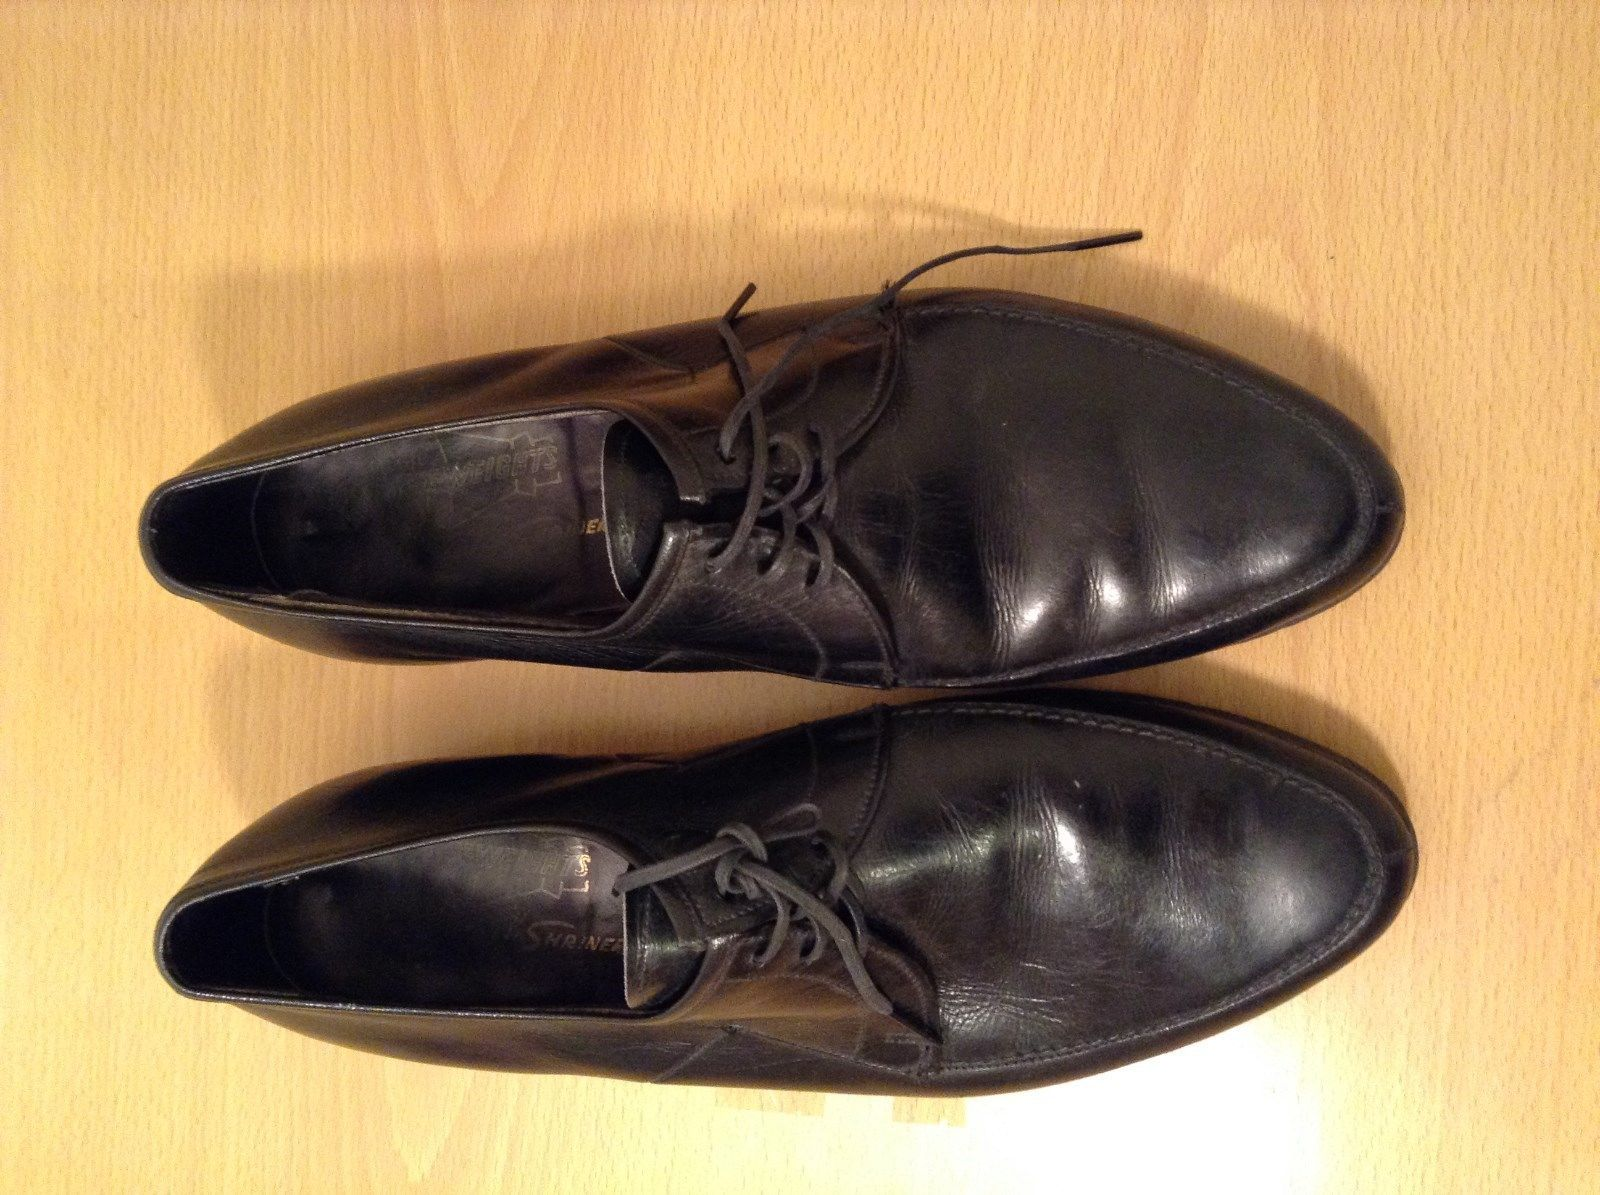 French Shriner Black Leather Tied Dress Shoes Size 9